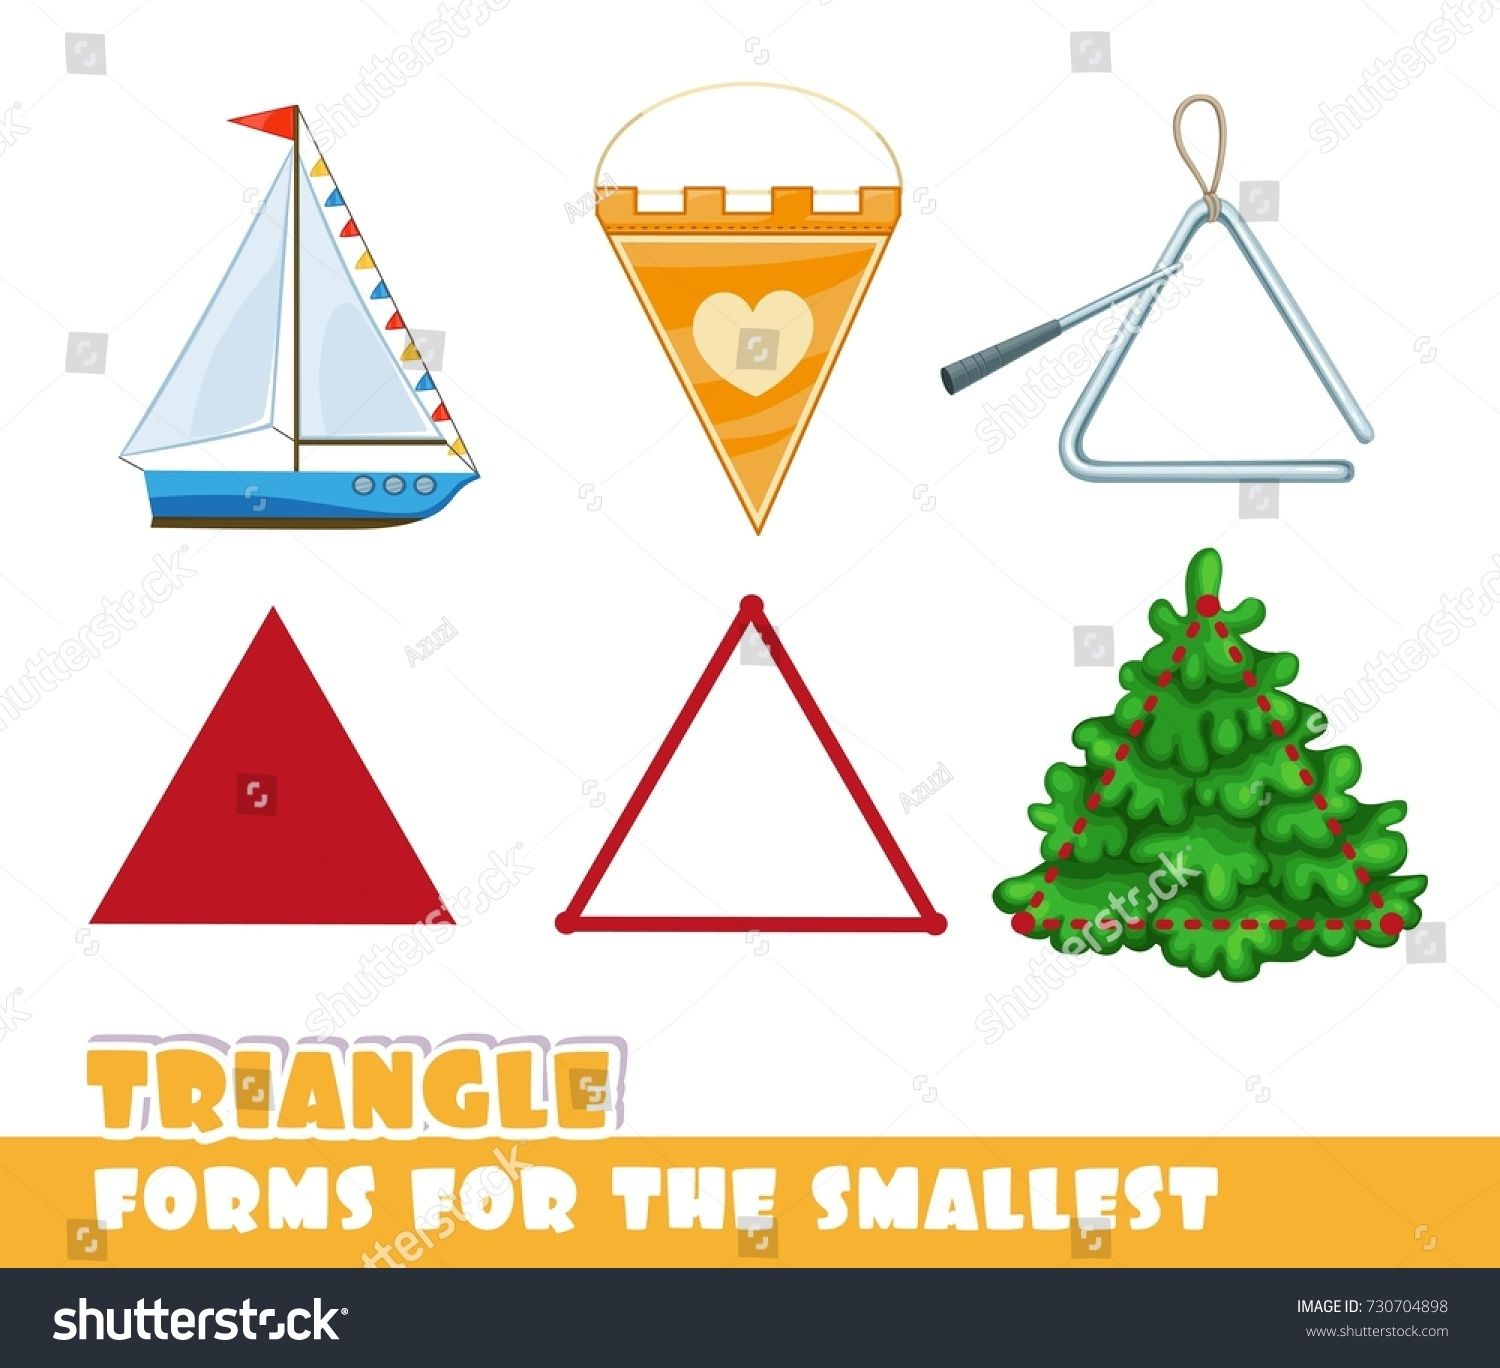 Forms For The Smallest Triangle And Objects Having A